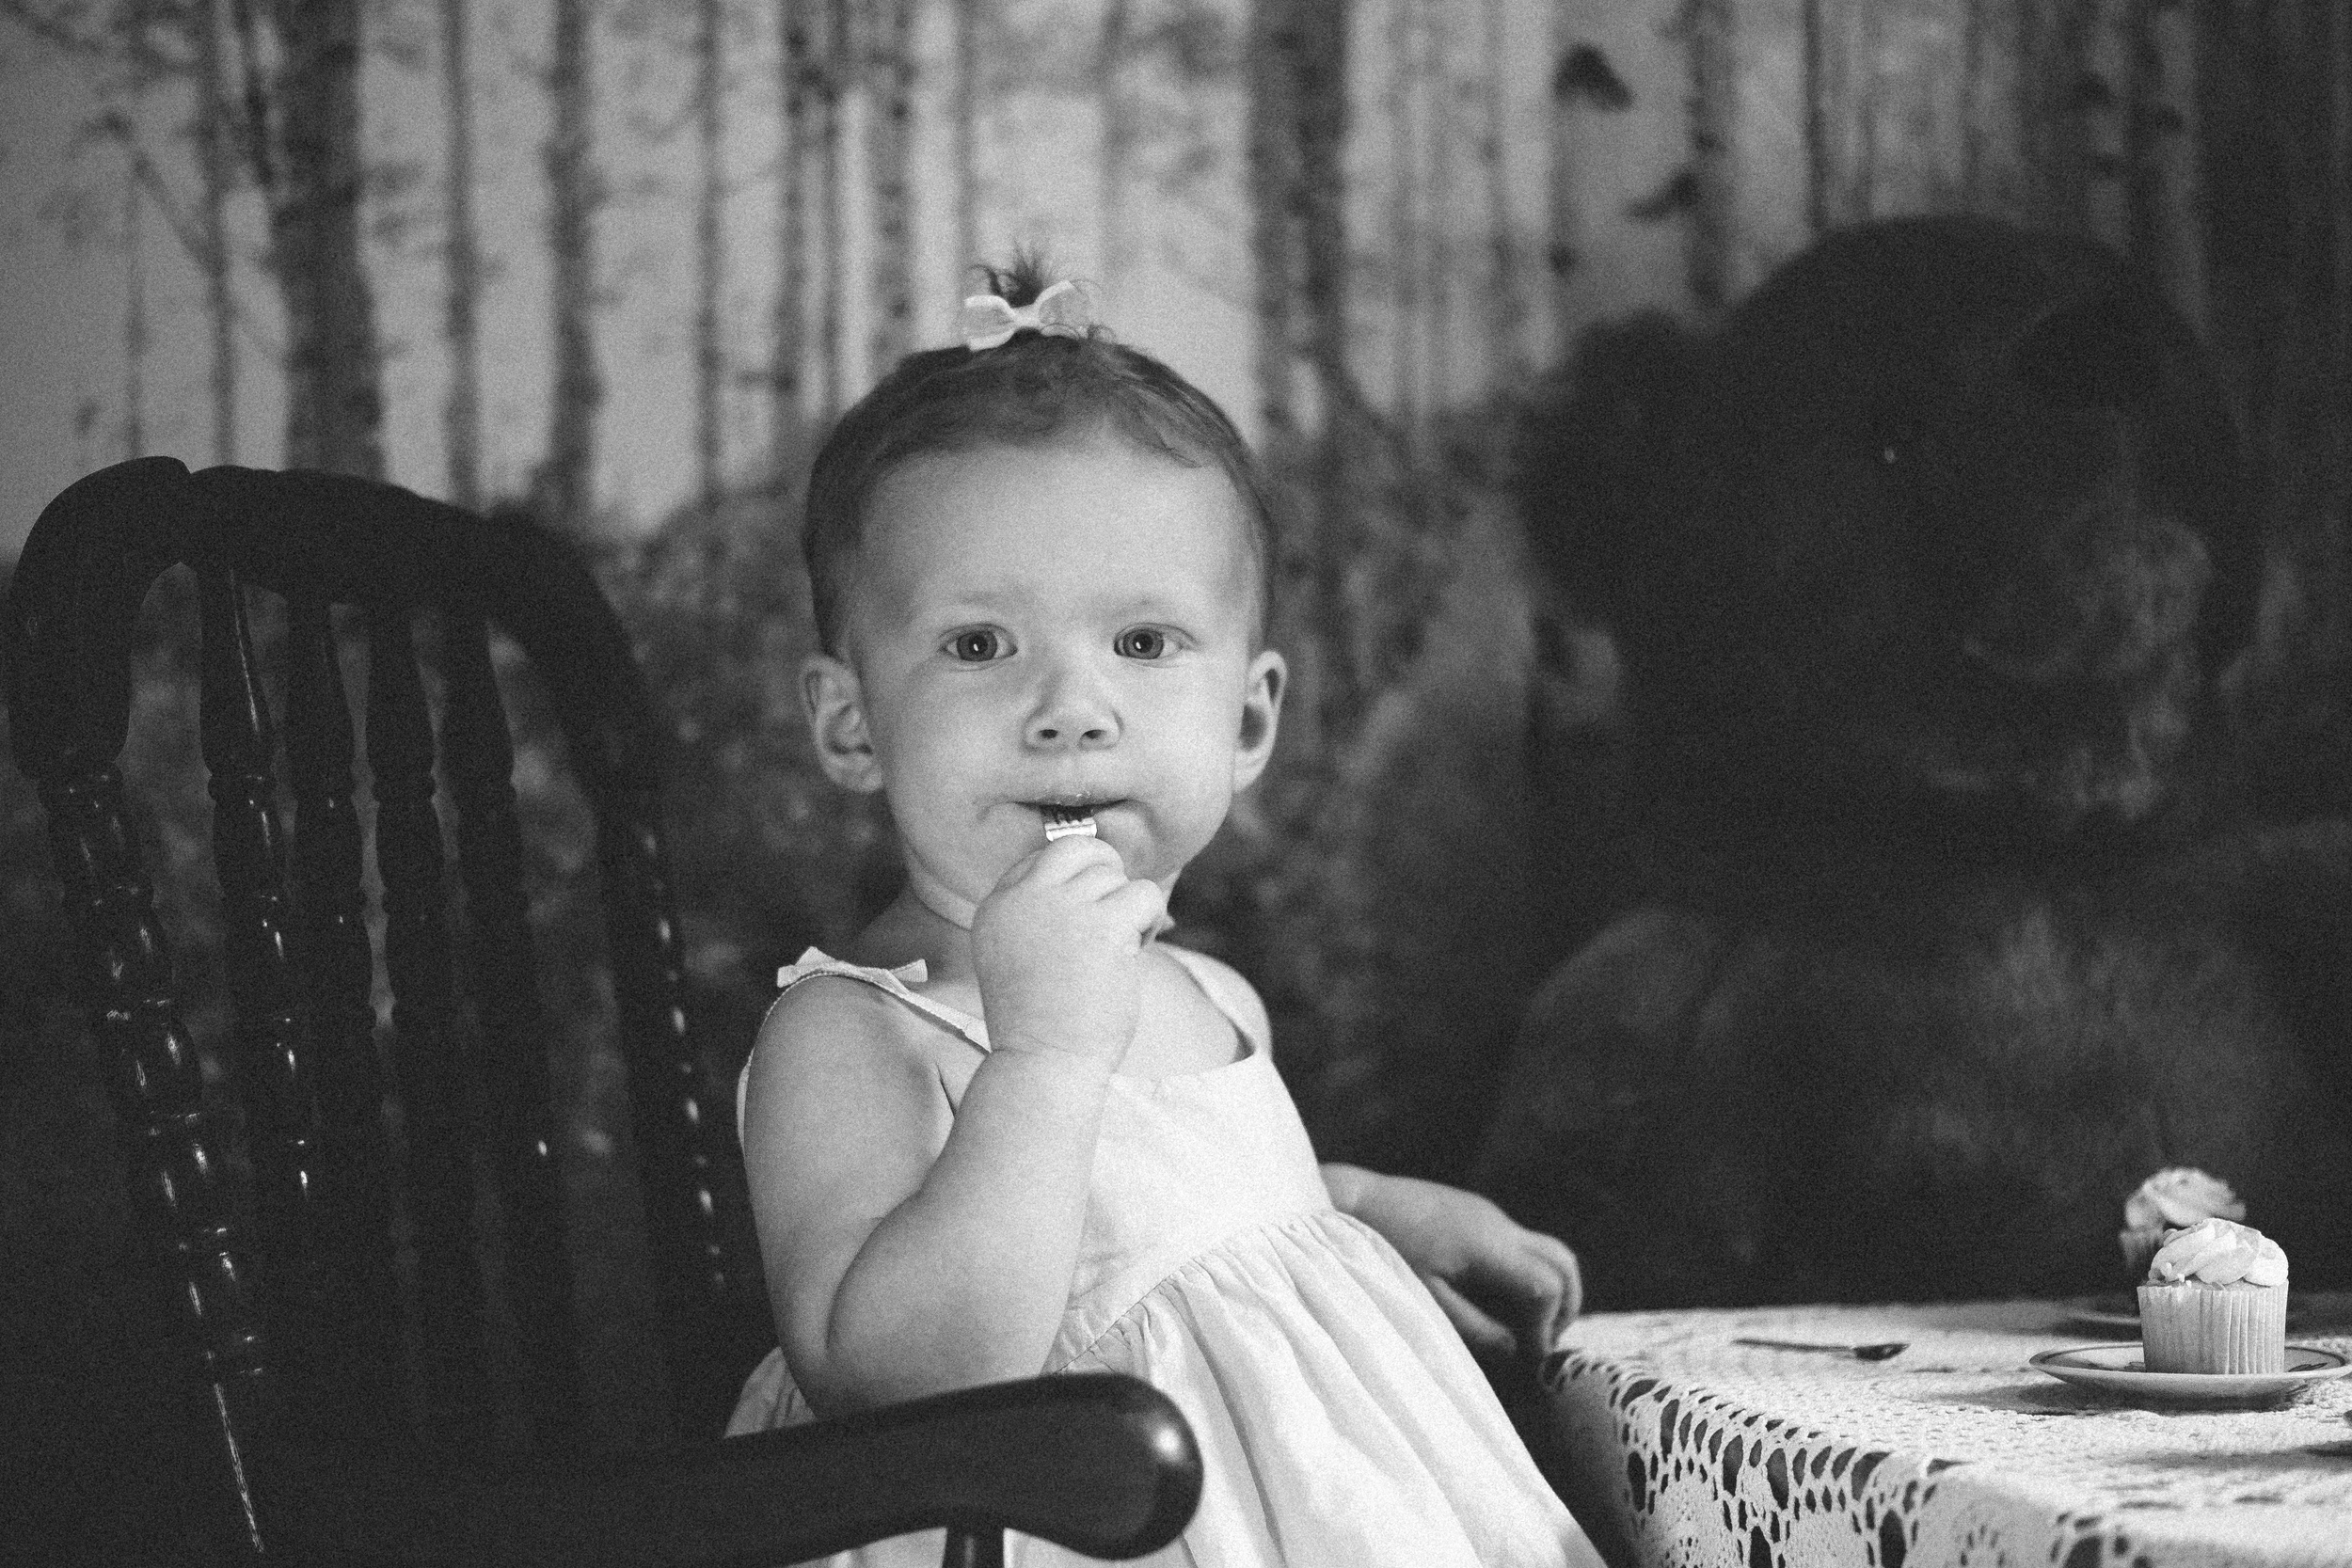 Scarlett busy eating cupcakes, made for great photo ops.